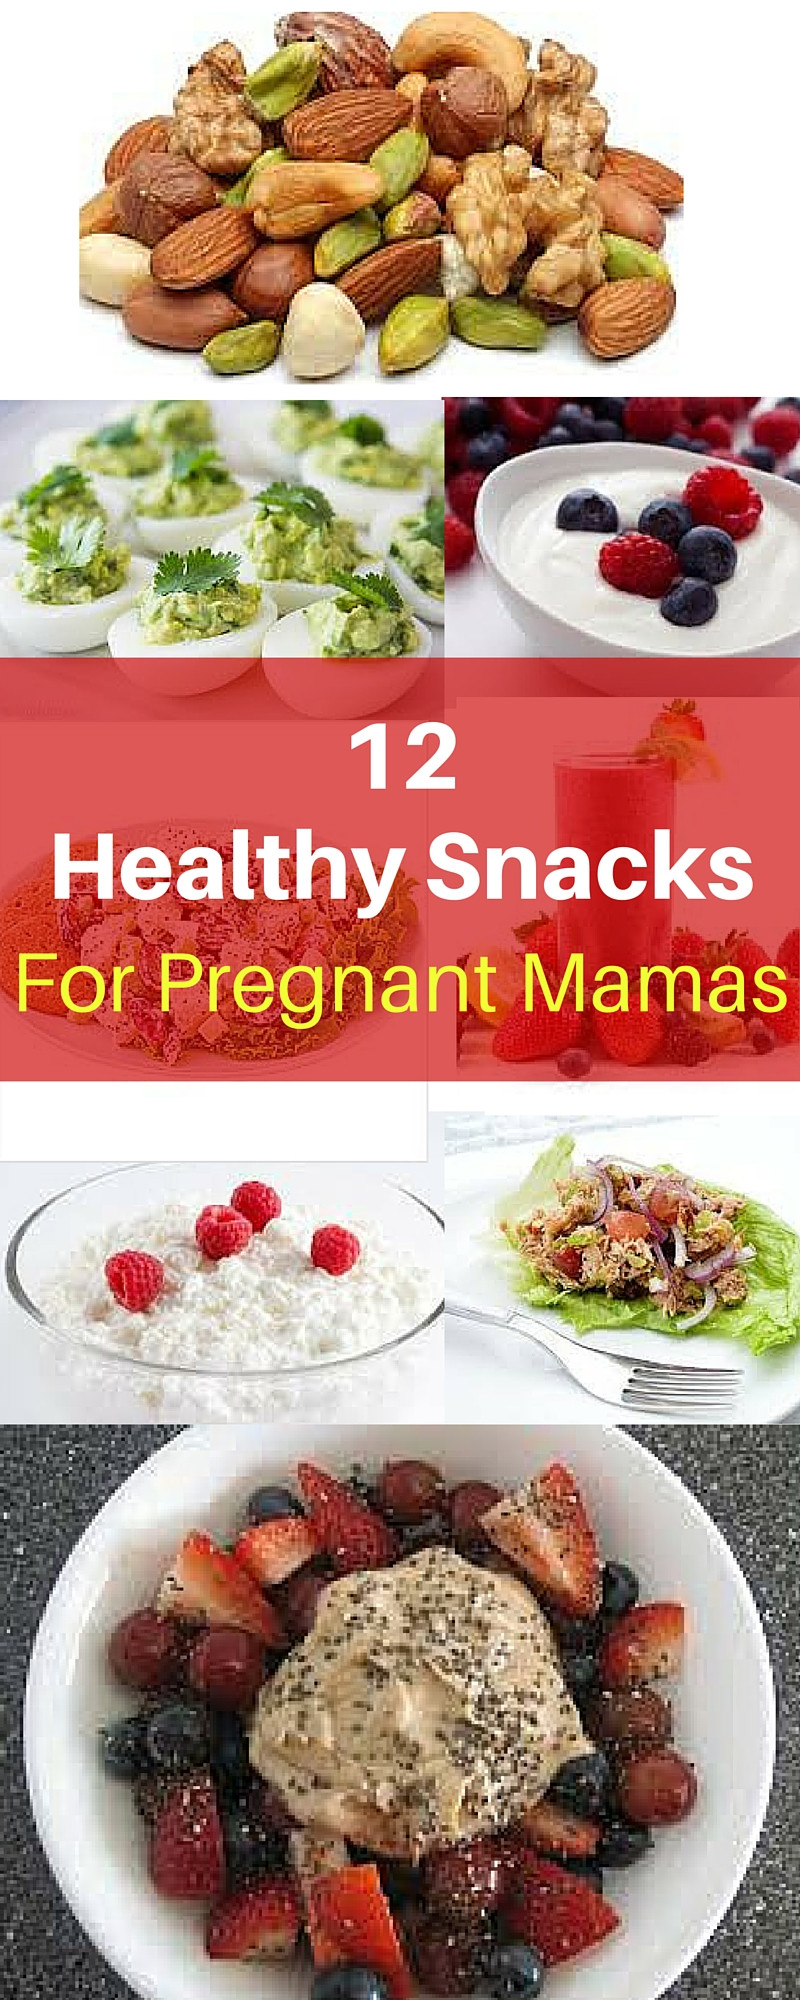 Pregnancy Healthy Snacks  10 Healthy Snacks For Pregnant Mamas Michelle Marie Fit